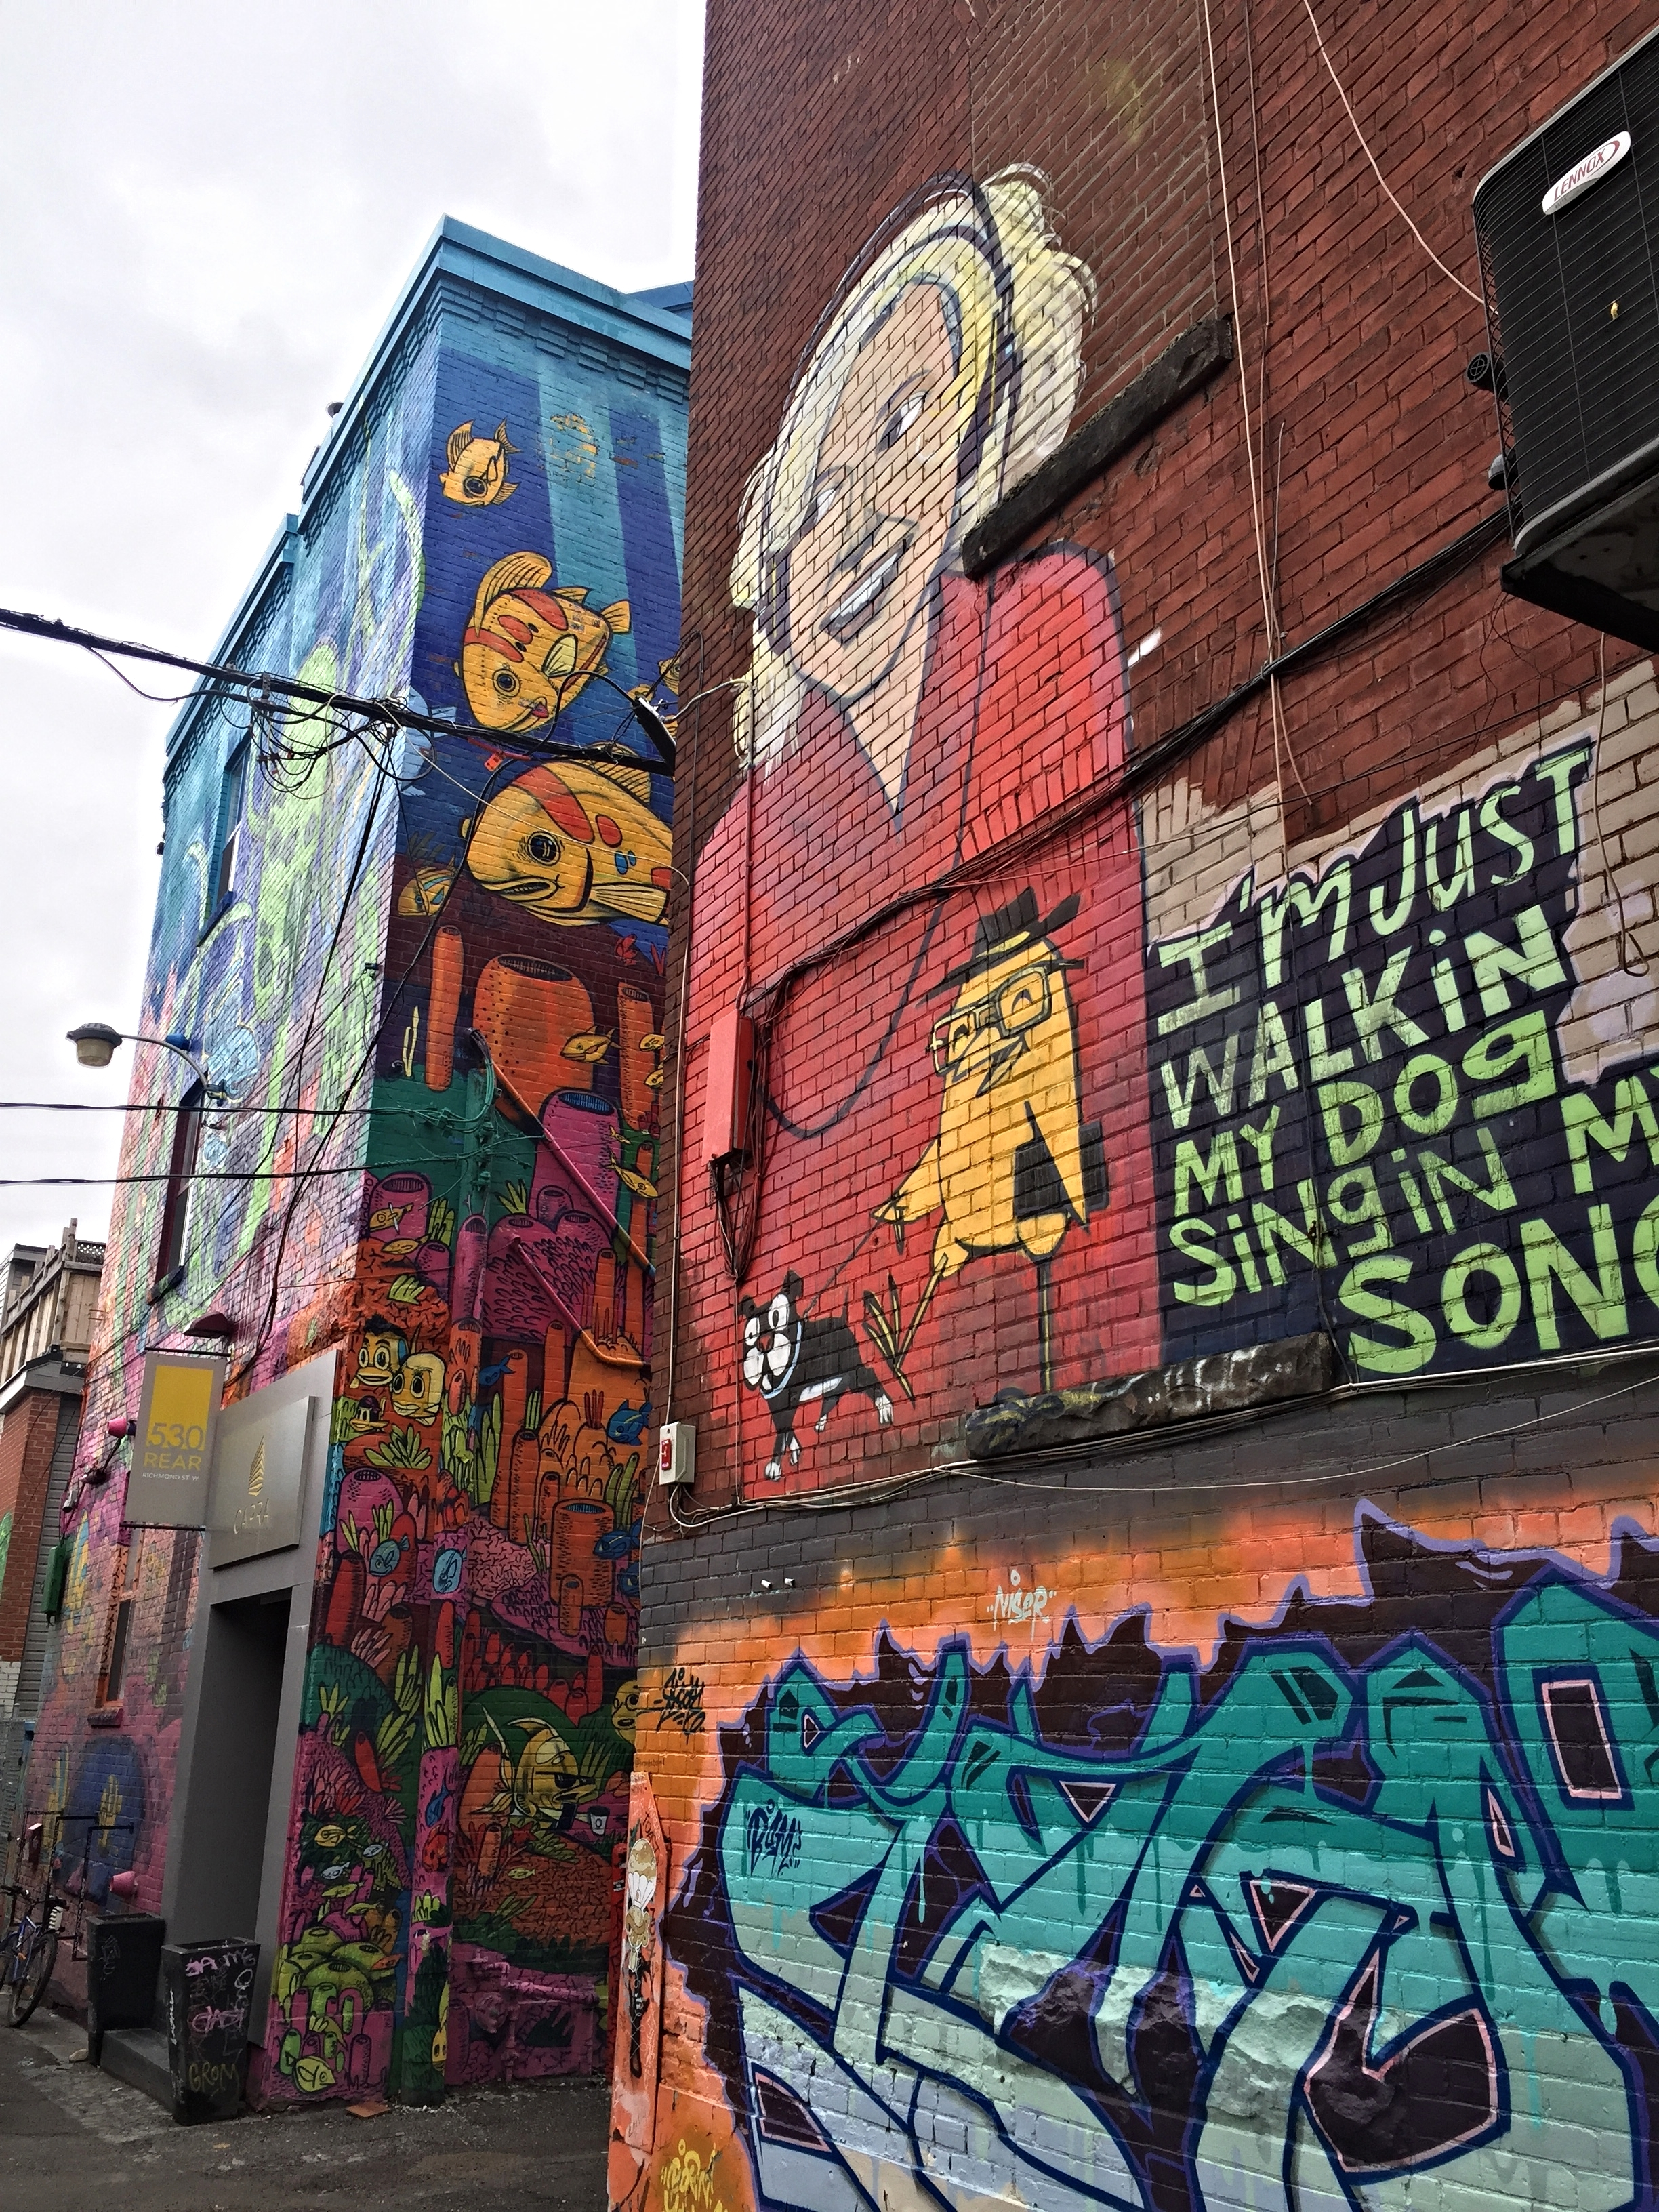 """The quantity and quality of street art in Toronto is fantastic-- I spent quite a bit of time checking out the area around Queen Street West dubbed """"Graffiti Alley"""" by the locals."""